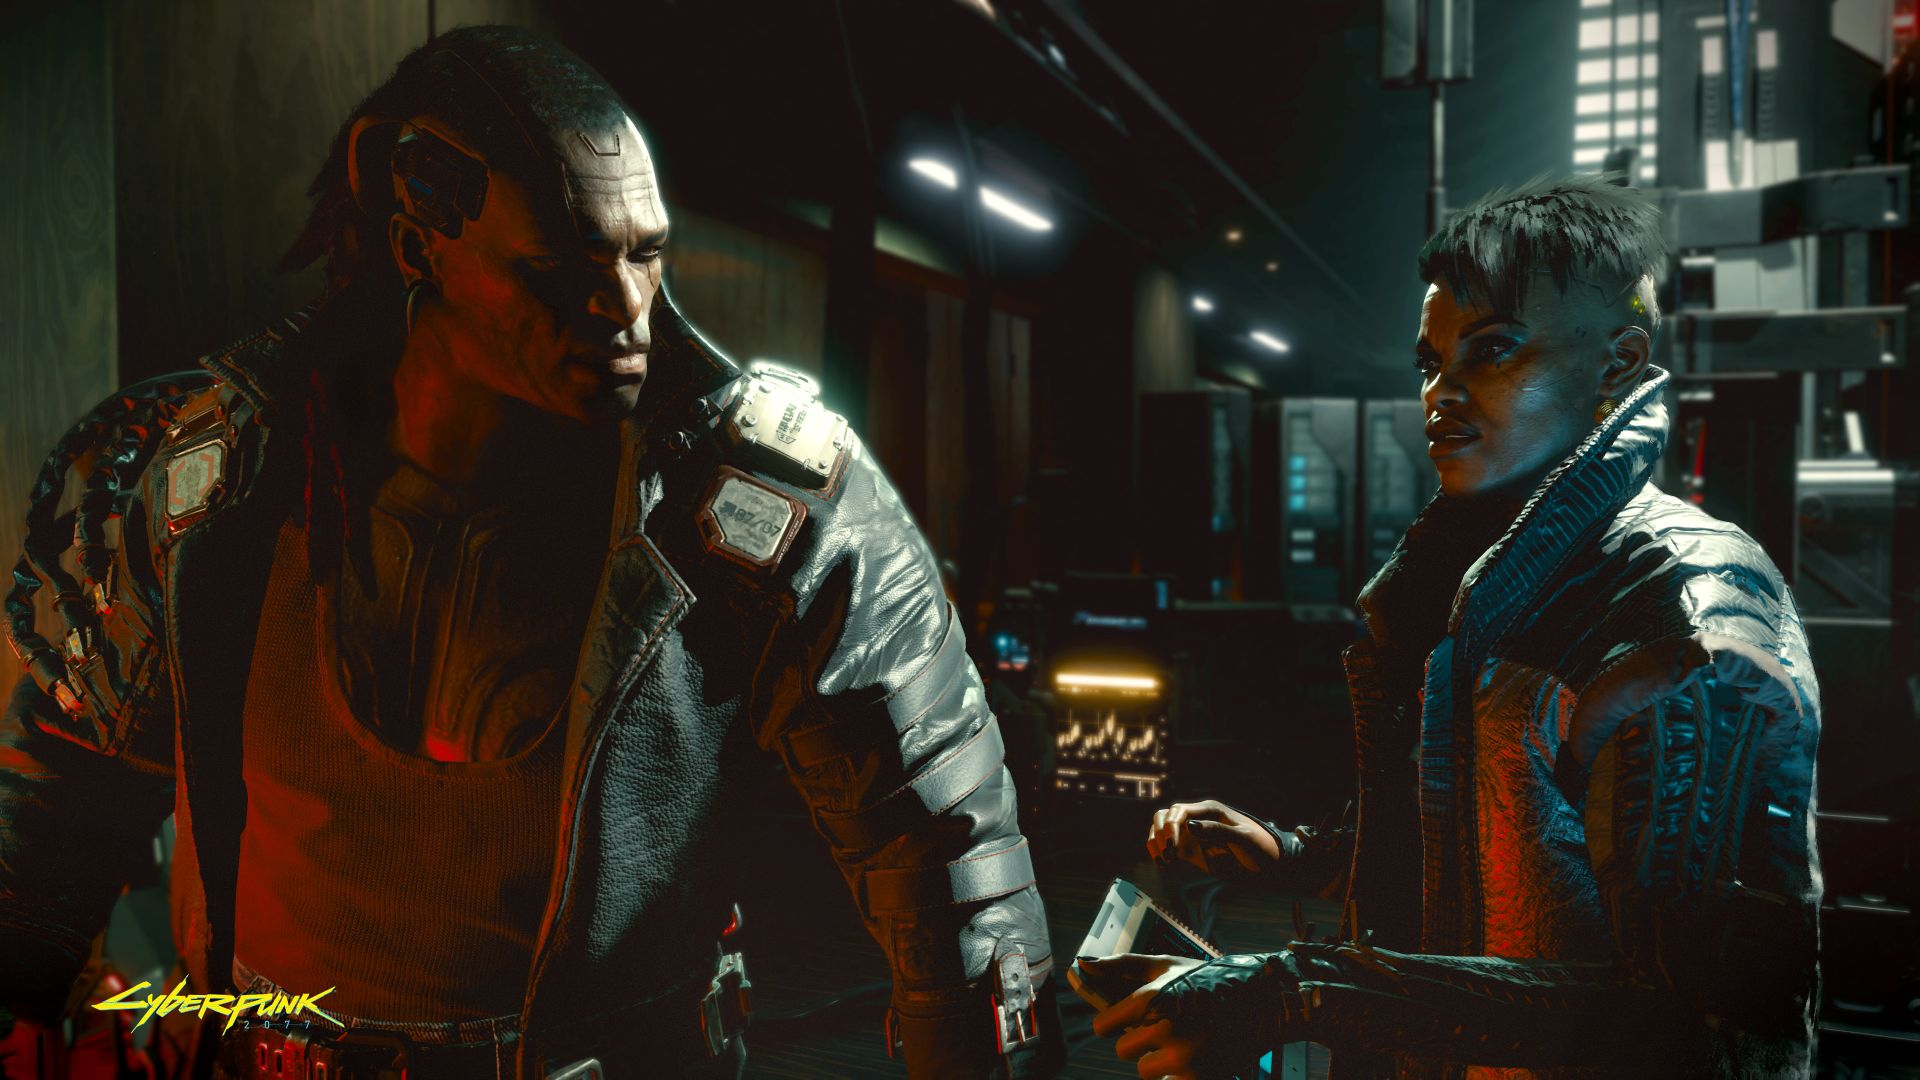 Two characters talk in a screenshot from Cyberpunk 2077